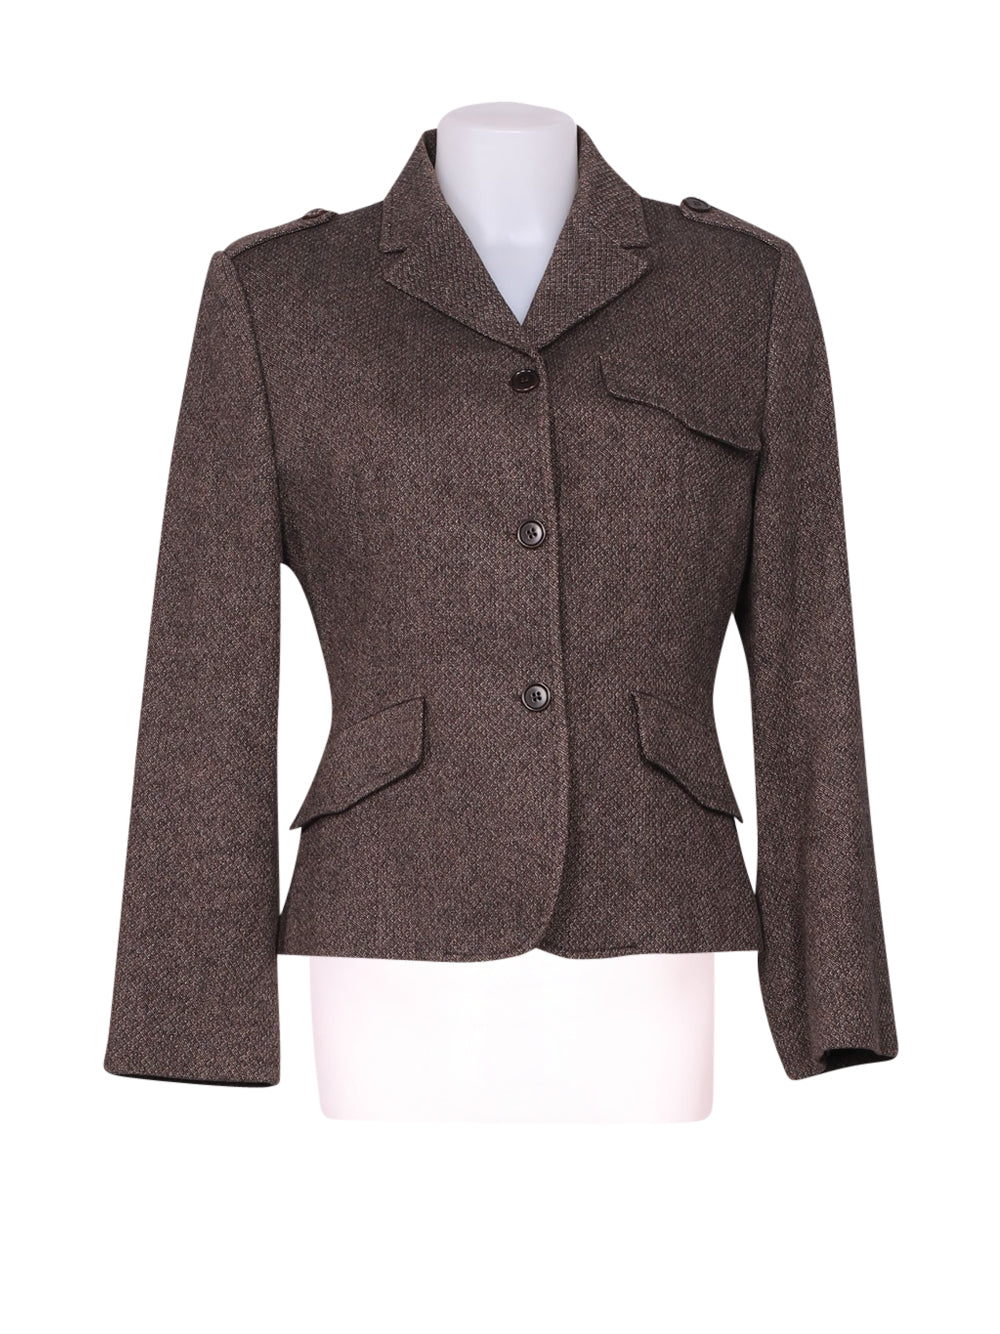 Front photo of Preloved Benetton Brown Woman's blazer - size 10/M